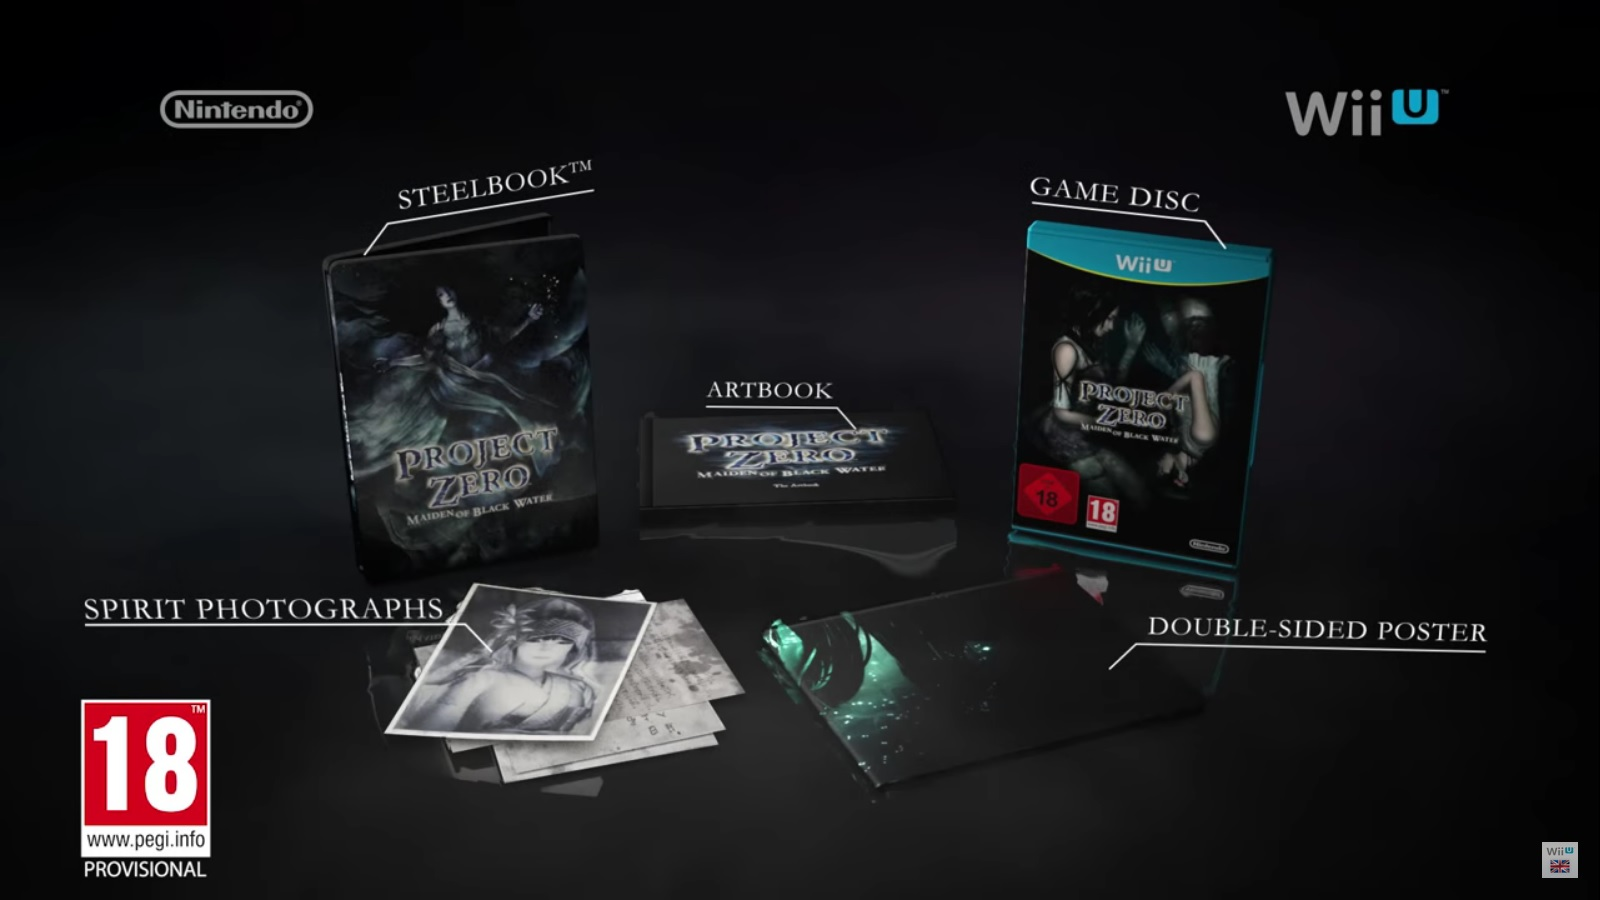 Fatal Frame: Maiden of Black Water Limited Edition (Japan / Europe only)